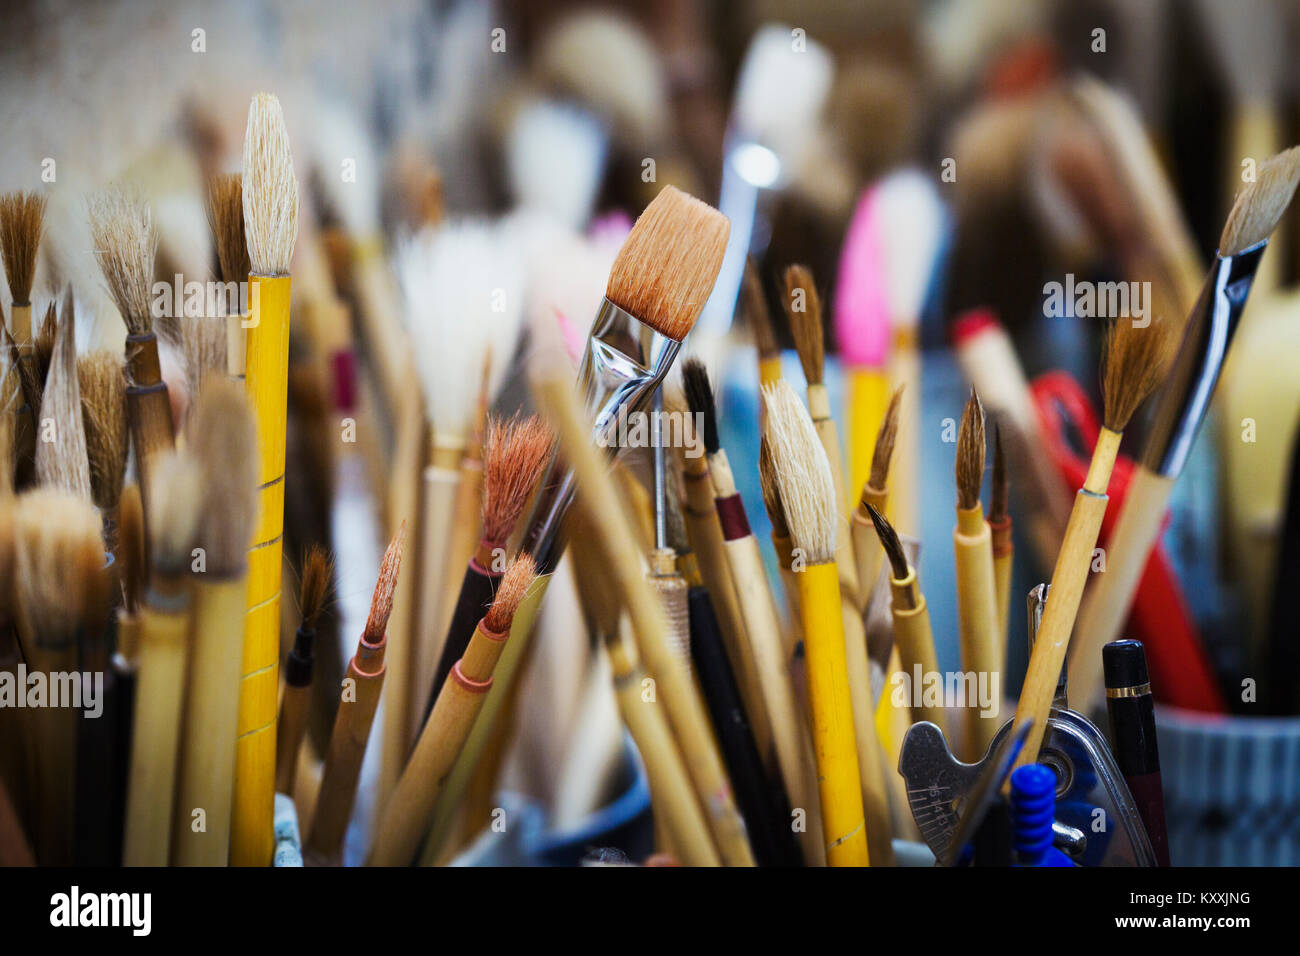 Close up of a selection of paintbrushes in a Japanese porcelain workshop. - Stock Image